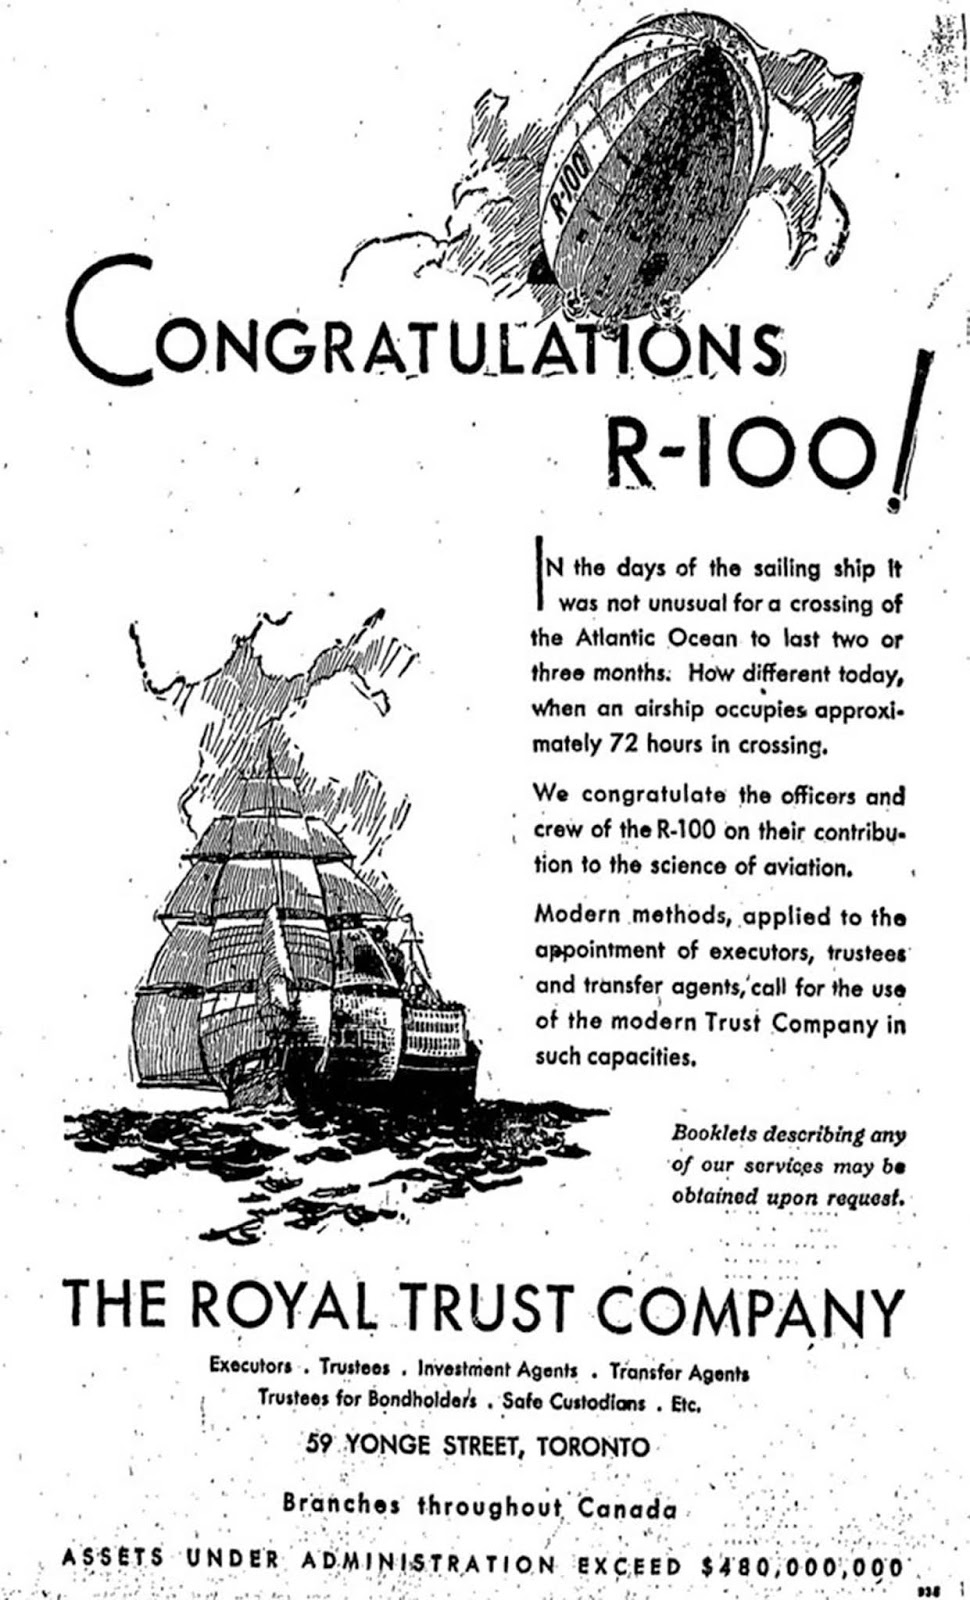 Advertising brochure for R-100.